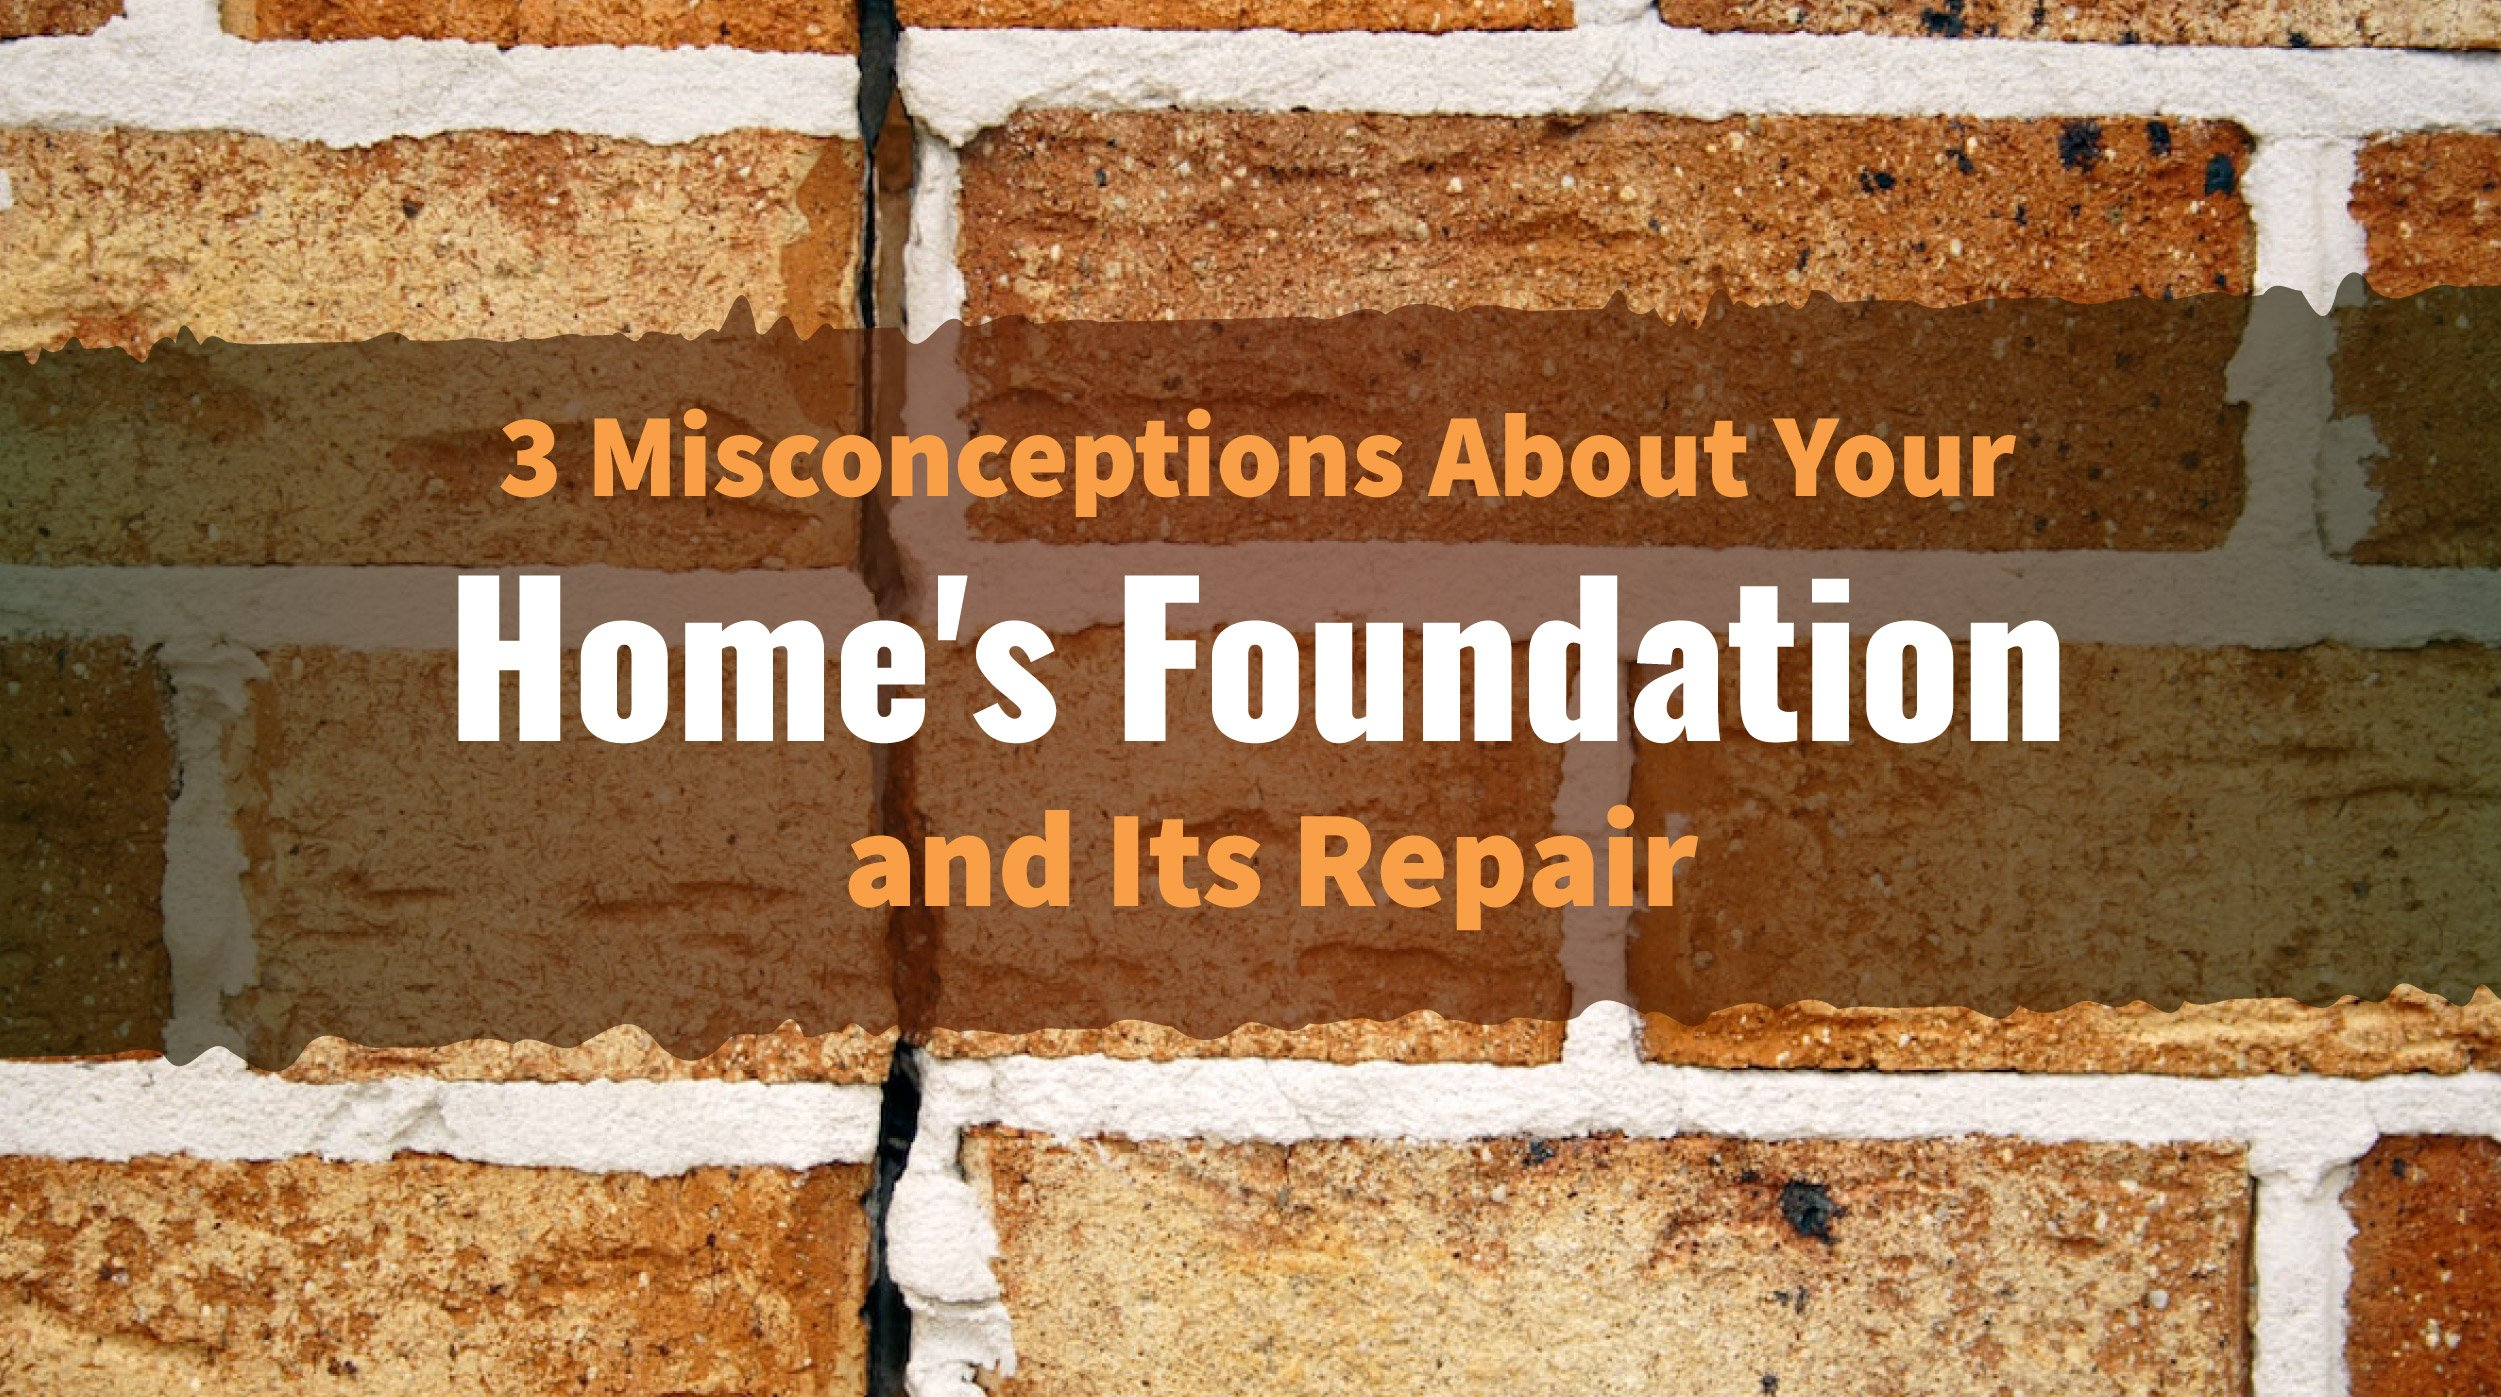 3 Misconceptions About Your Home's Foundation and Its Repair